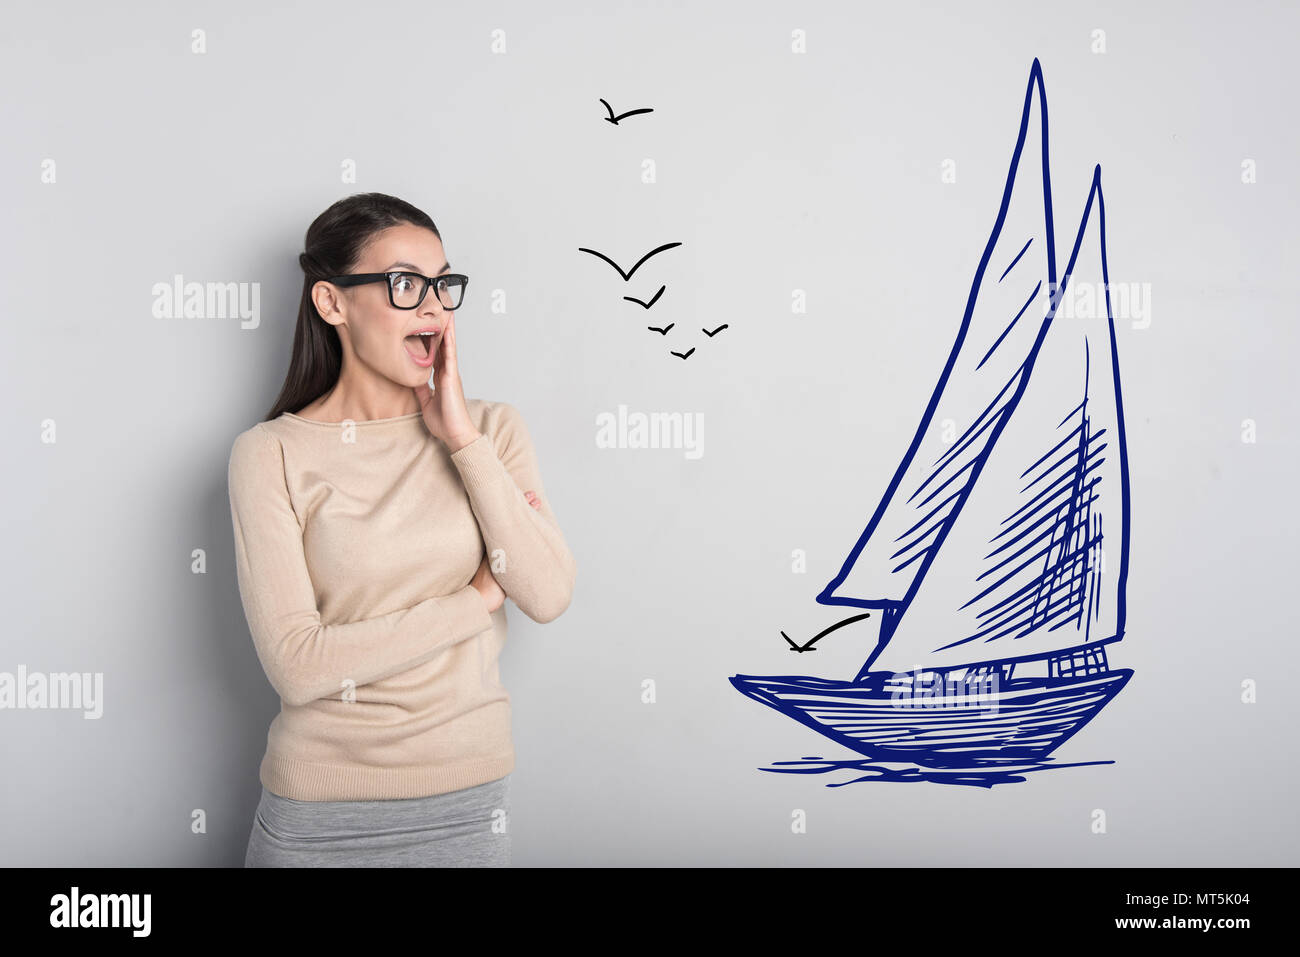 Emotional woman feeling impressed while noticing a big ship - Stock Image